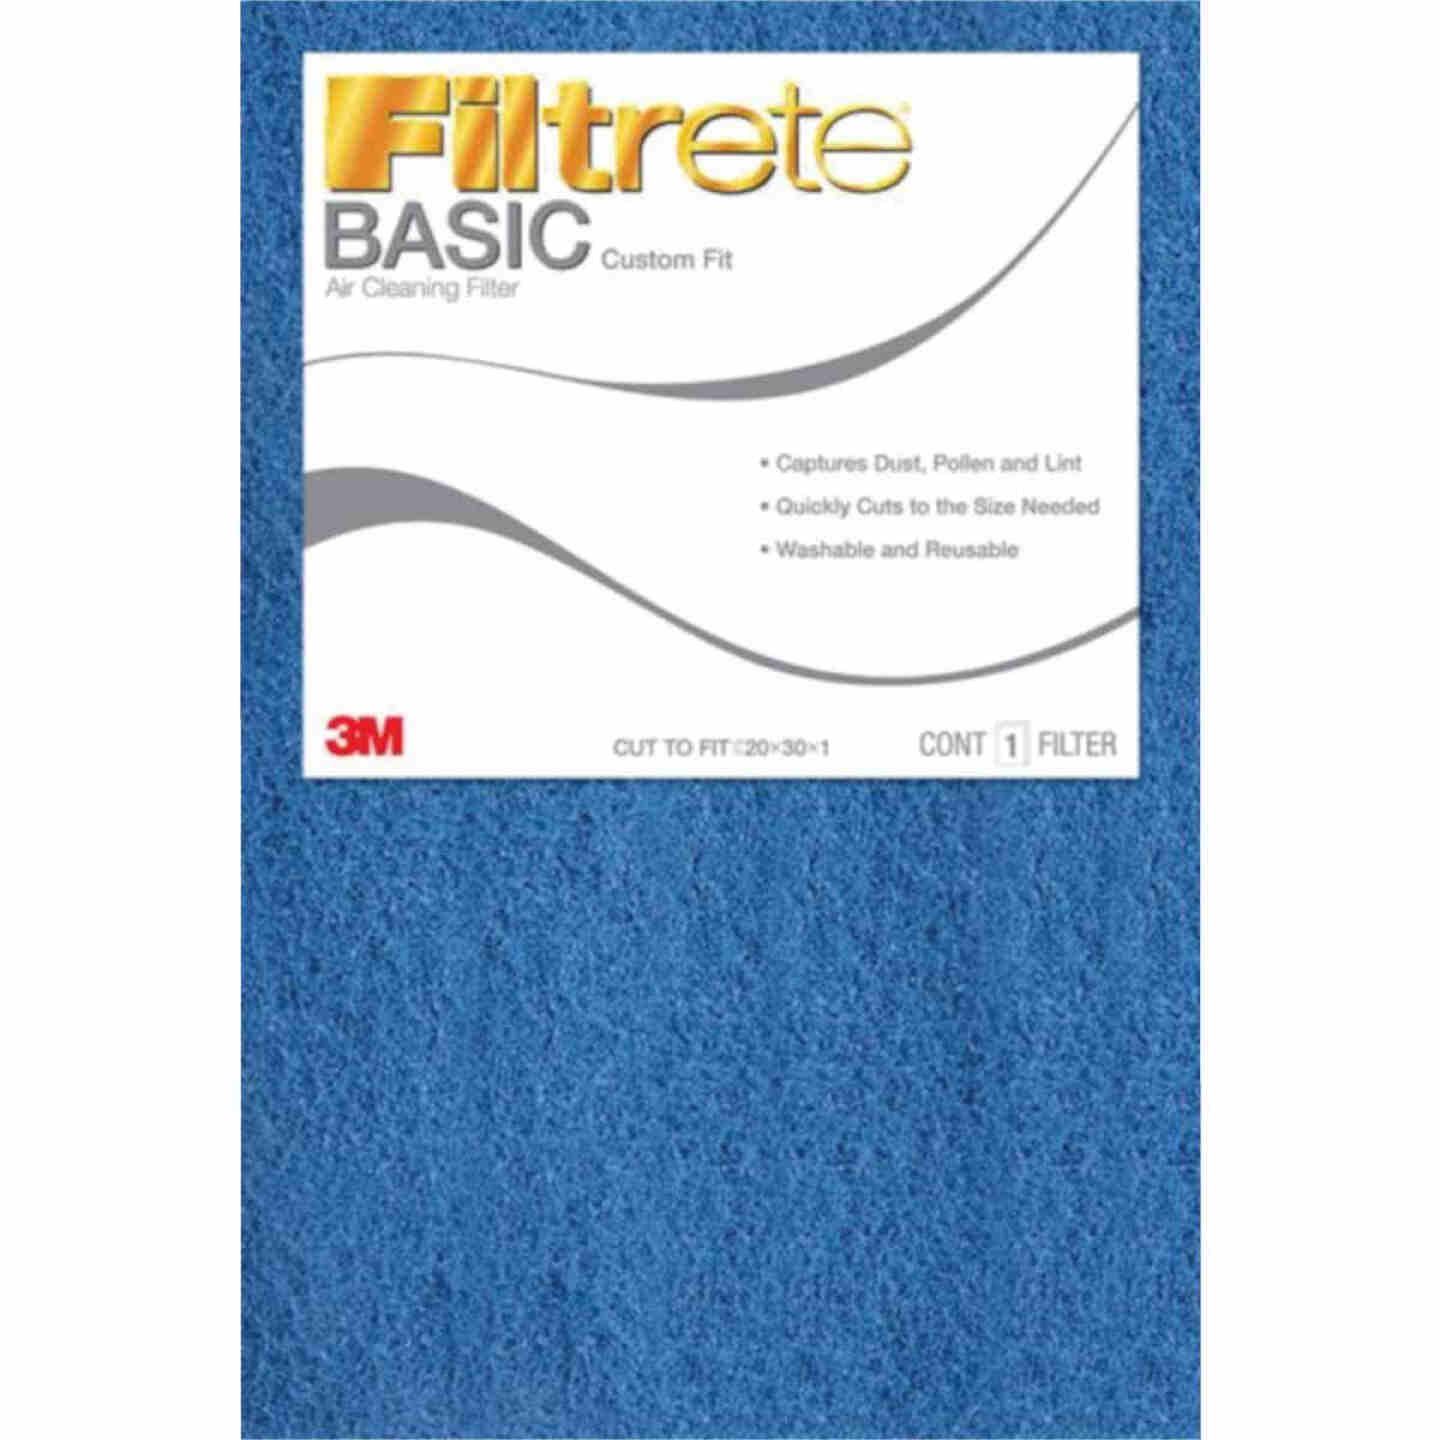 3M Filtrete 20 In. x 30 In. x 1 In. 100 MPR Basic Custom Fit Trimmable Air Filter Image 1